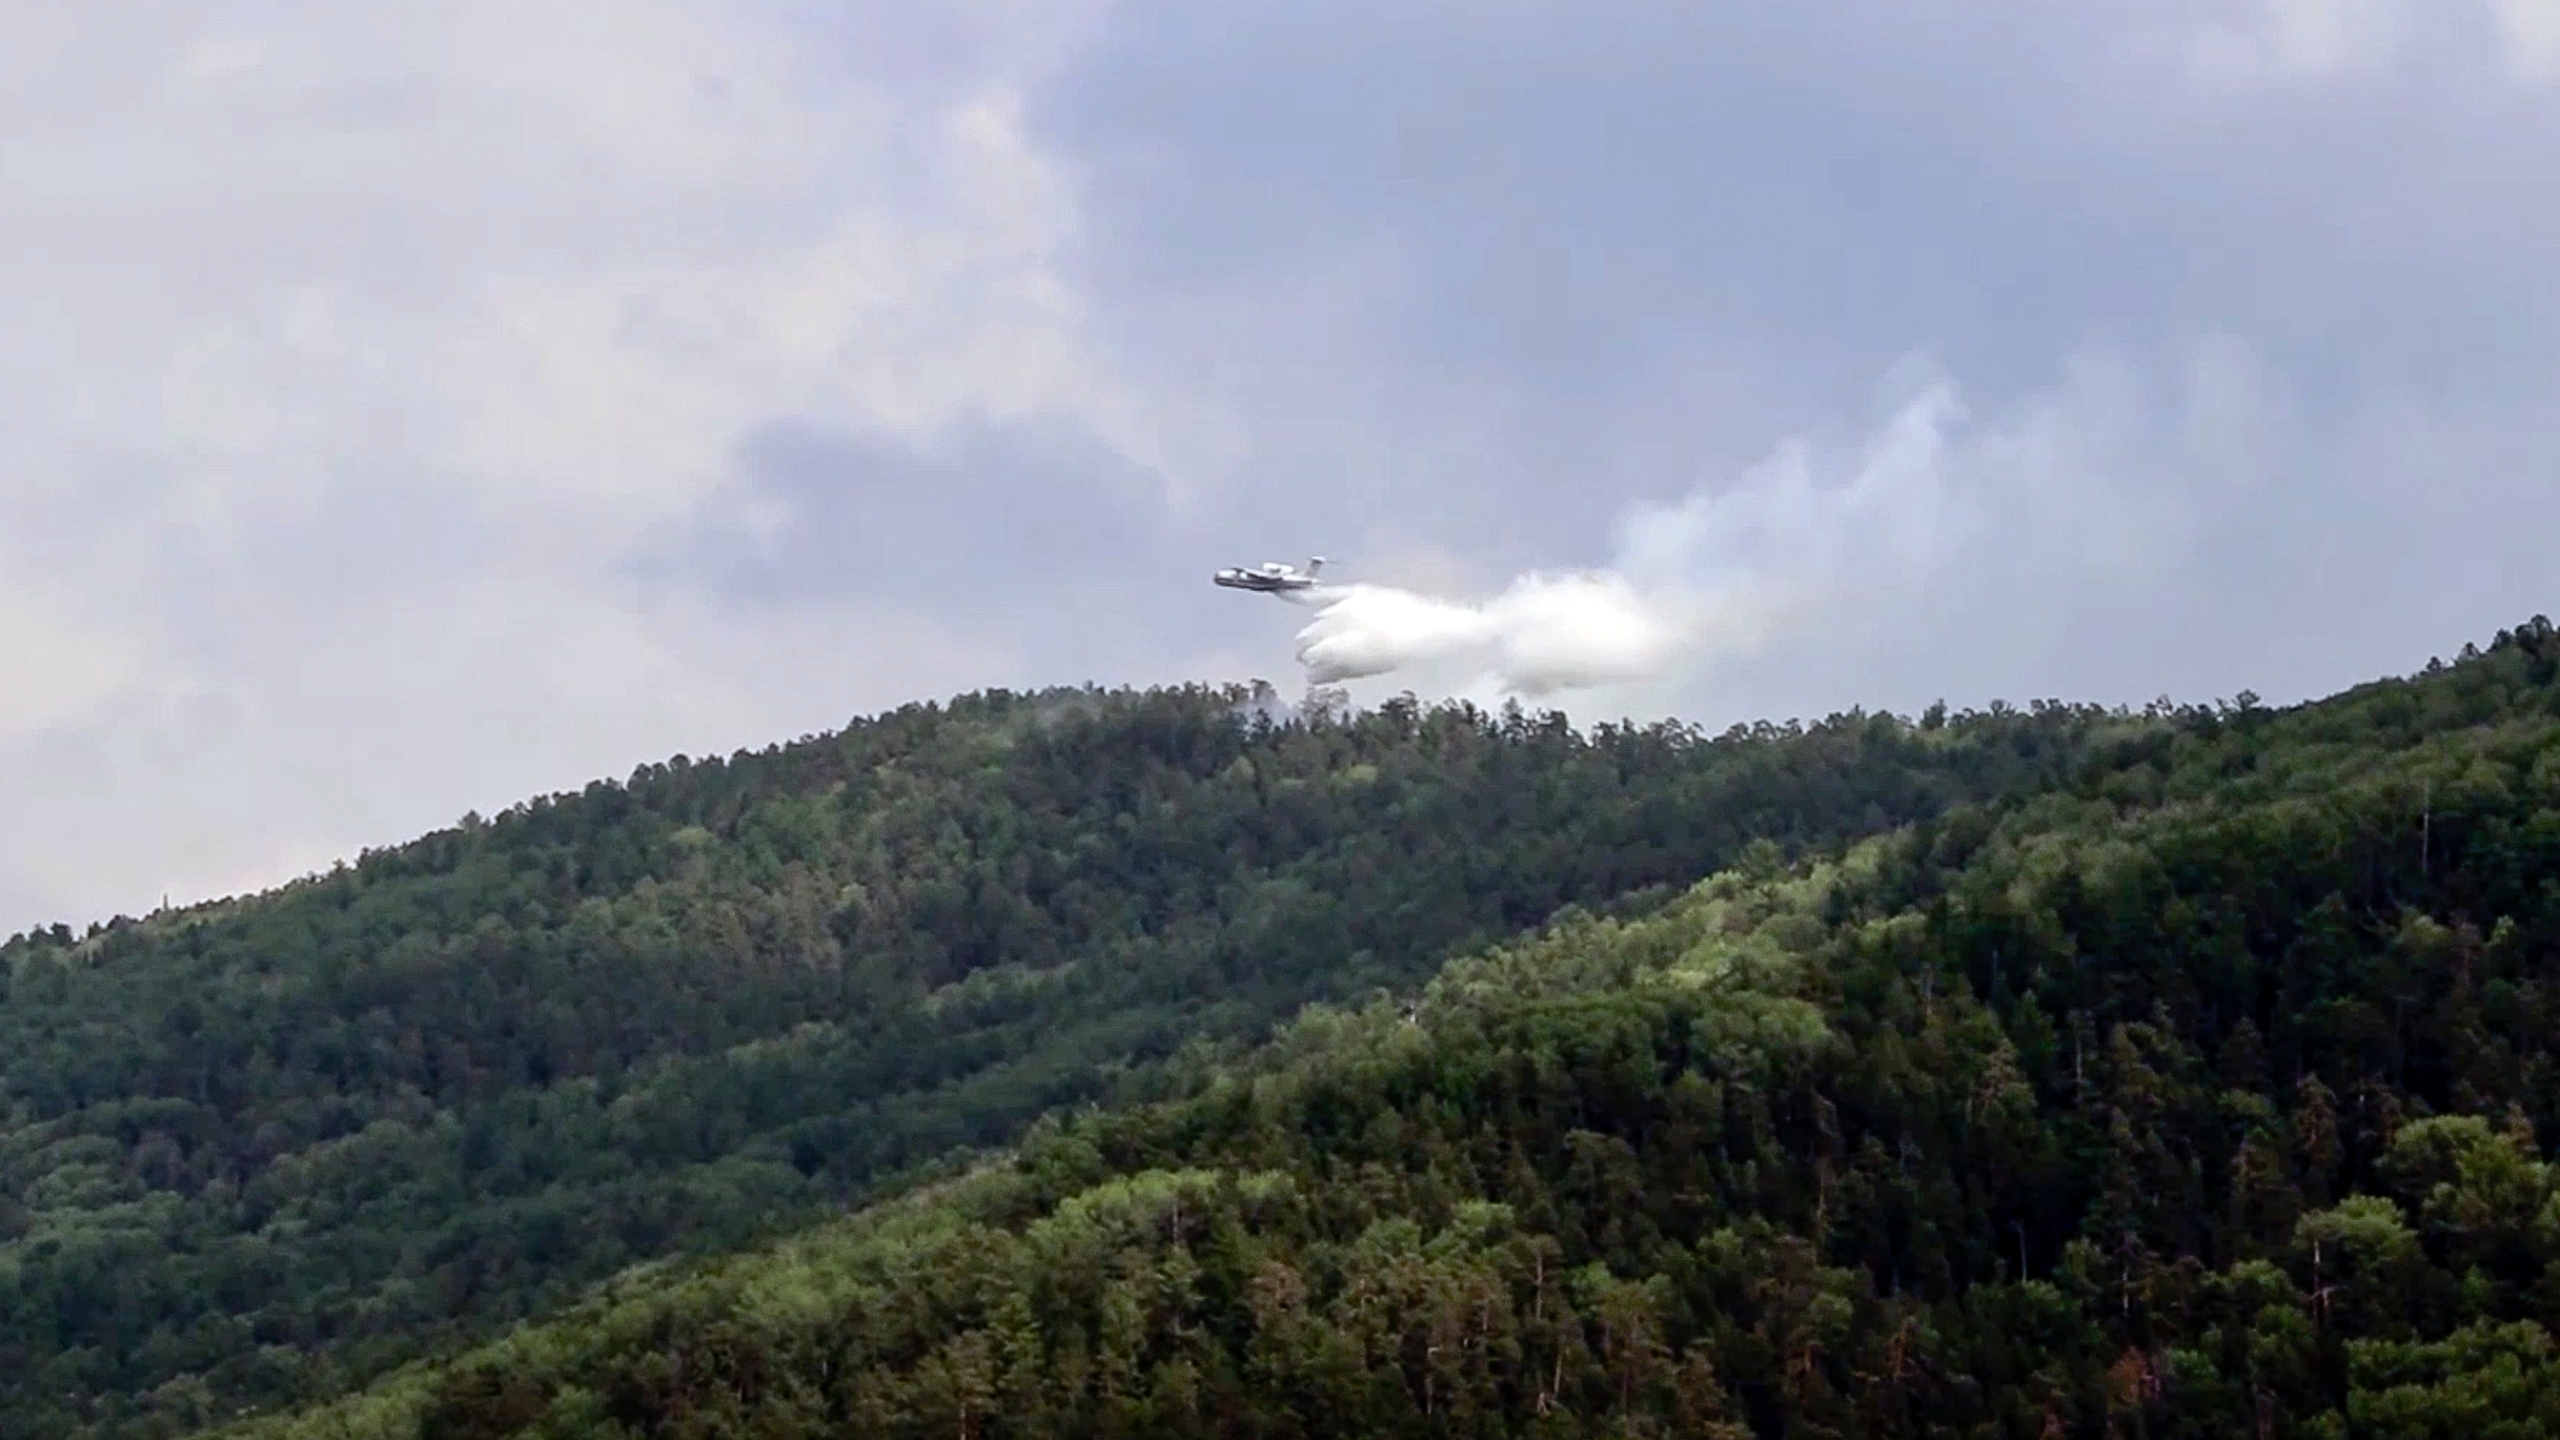 In this July 10, 2020, file image taken from video provided by Russian Emergency Ministry, a multipurpose amphibious aircraft releases water to extinguish a fire in the Trans-Baikal National Park in Buryatia, southern Siberia, Russia. The National Oceanic and Atmospheric Administration's annual Arctic Report Card, released on Tuesday, Dec. 8, 2020, shows how warming temperatures in the Arctic are transforming the region's geography and ecosystems. (Russian Emergency Ministry Press Service via AP, File)